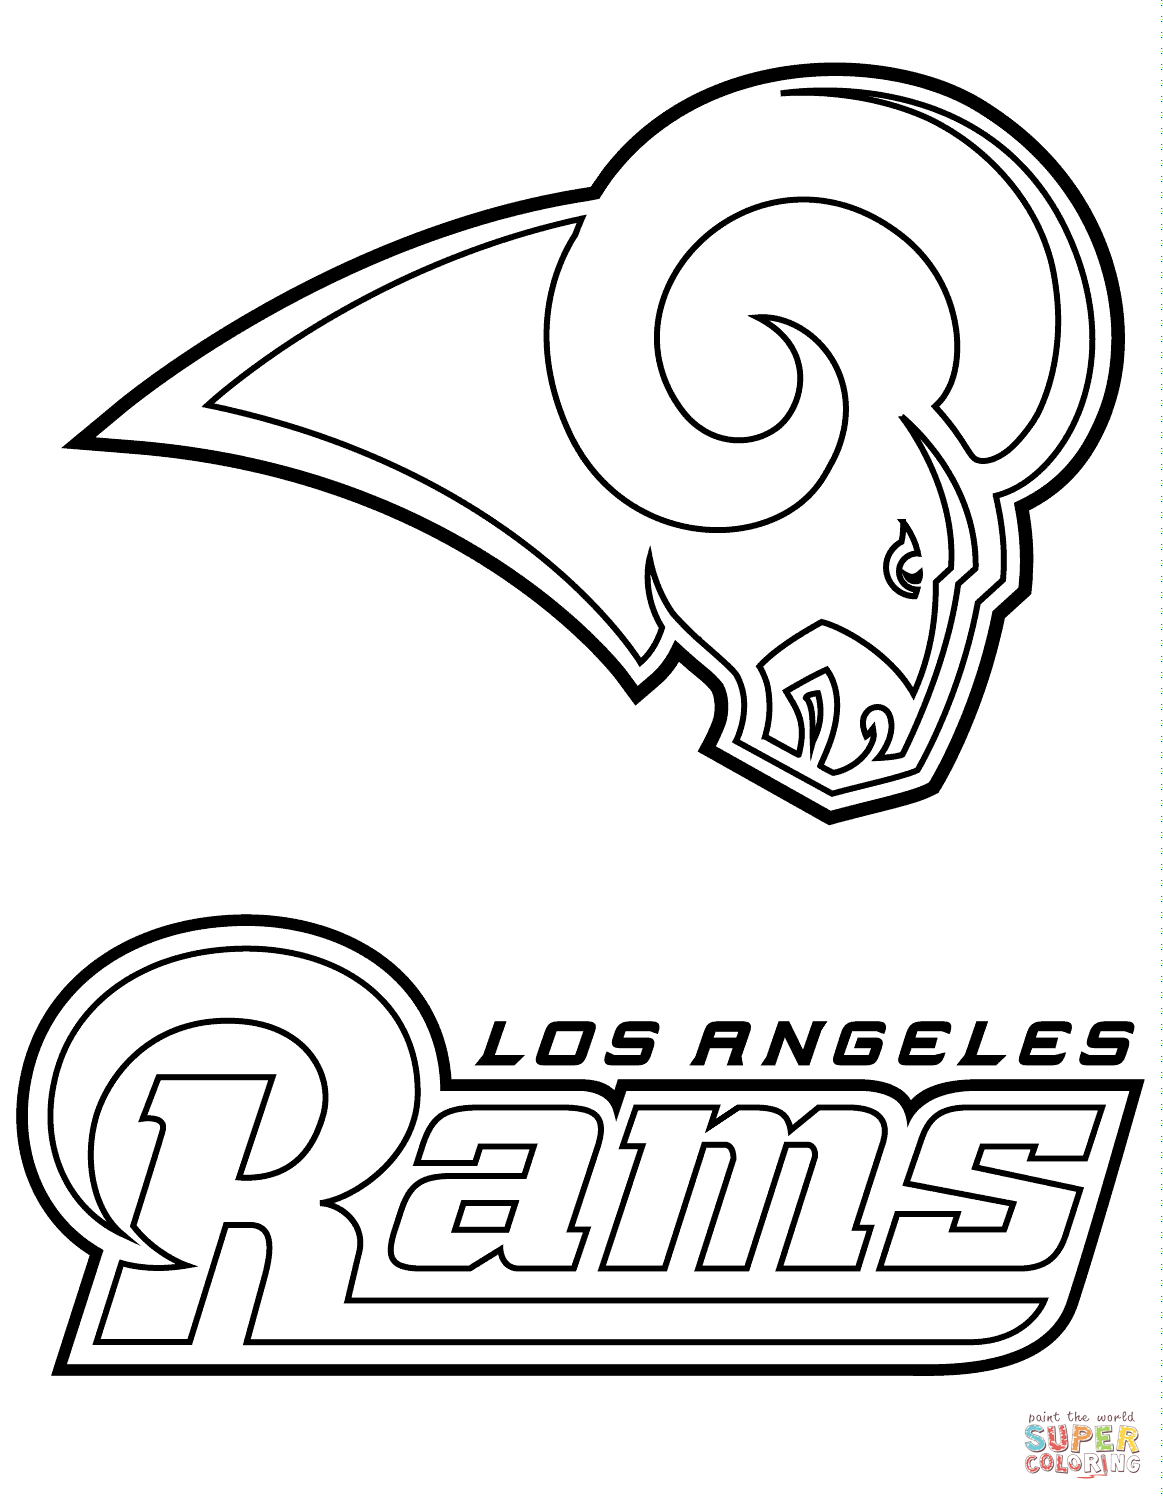 Los Angeles Rams Logo Coloring Page